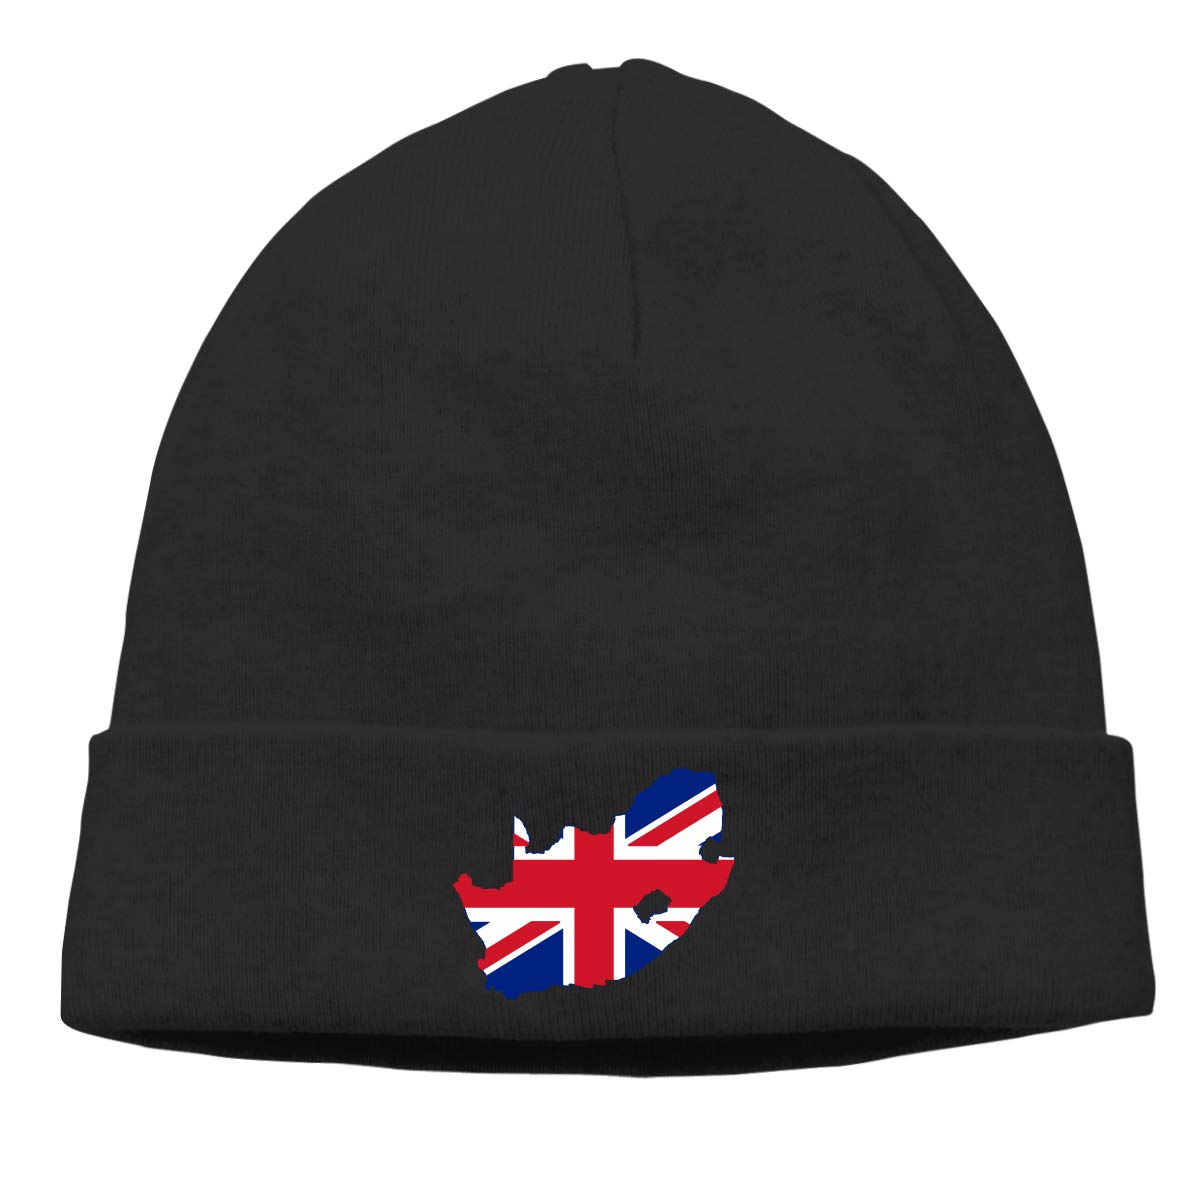 Thin Stretchy /& Soft Winter Cap United Kingdom Flag Map of South Africa Women Men Solid Color Beanie Hat